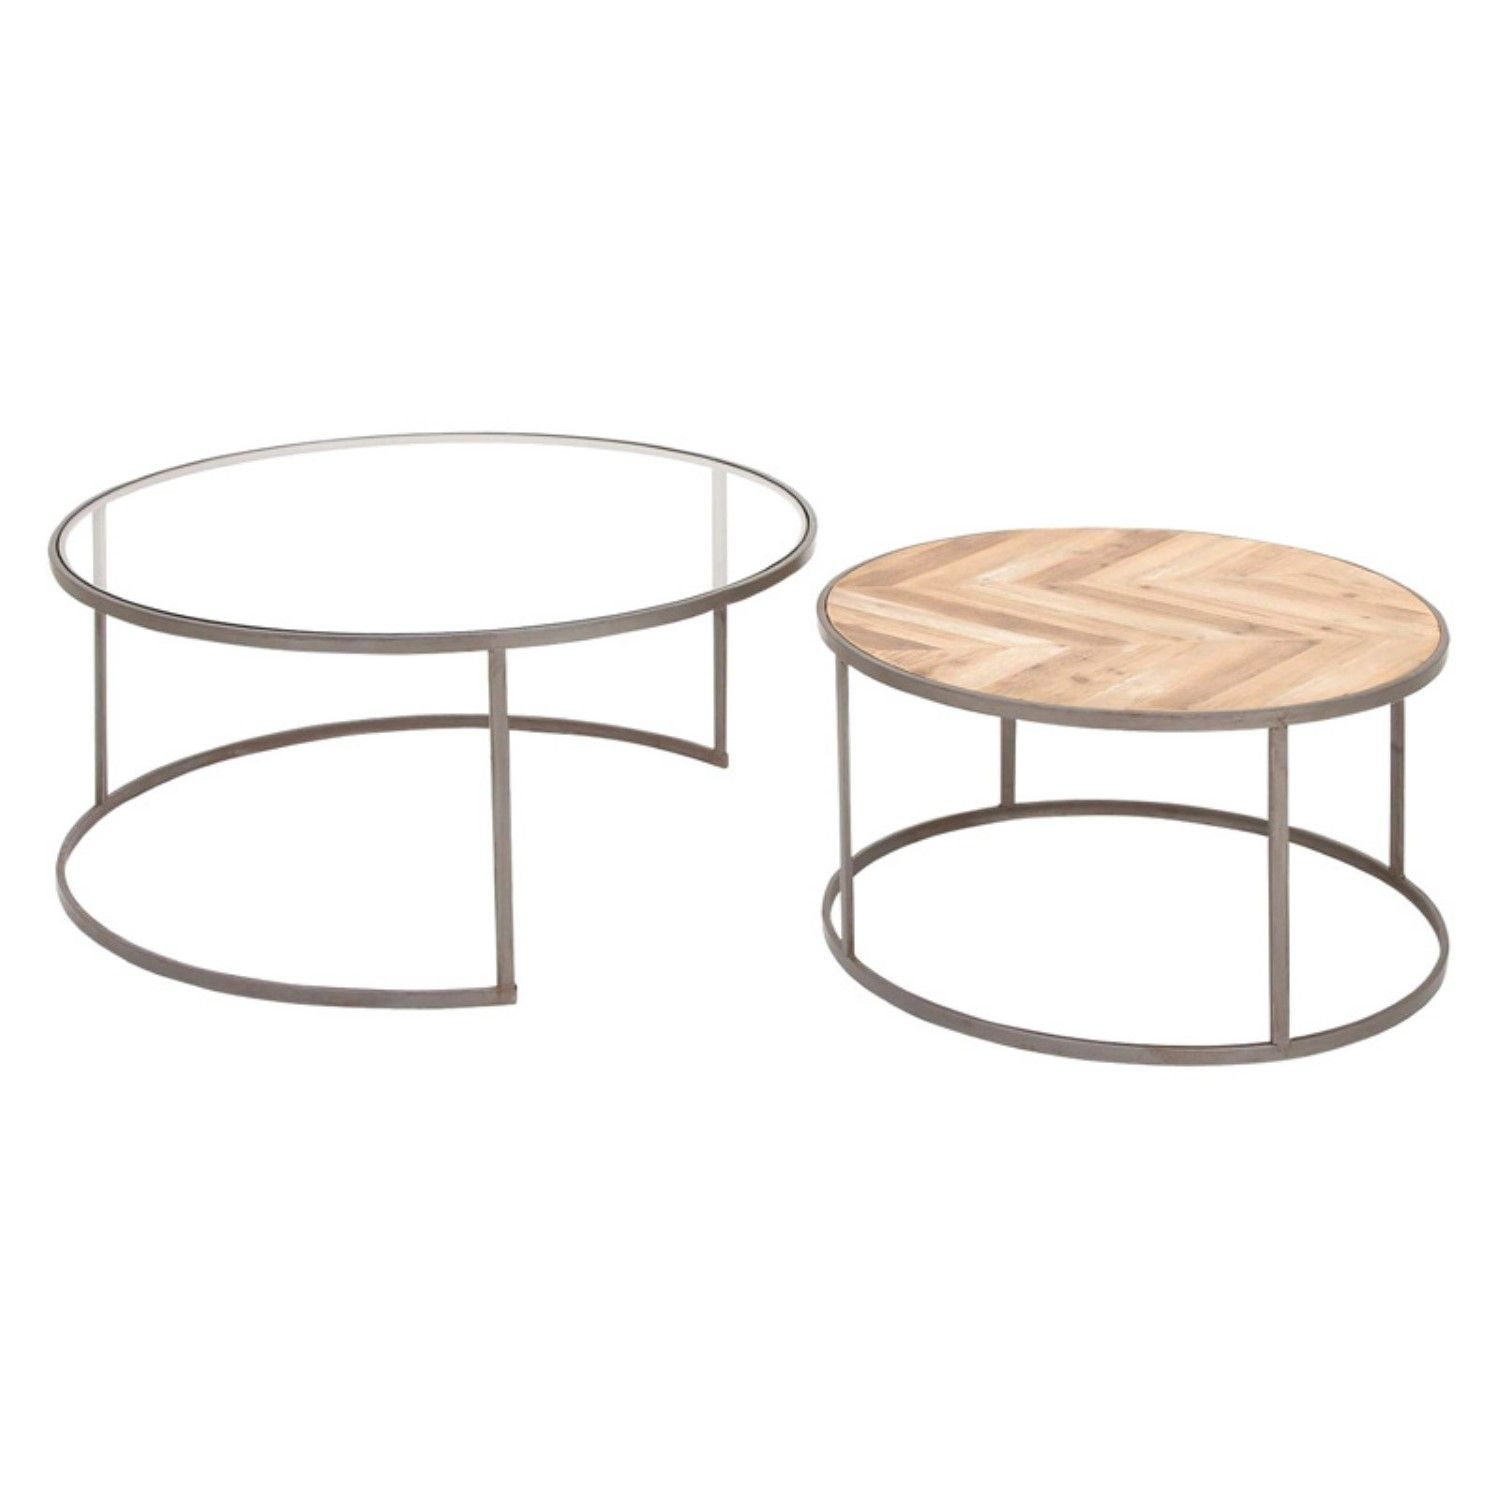 Light And Dark Stained Cypress Wood Forms A Herringbone Motif On The Top Of The Two Pieces In The De Round Coffee Table Sets Nesting Coffee Tables Coffee Table [ 1500 x 1500 Pixel ]